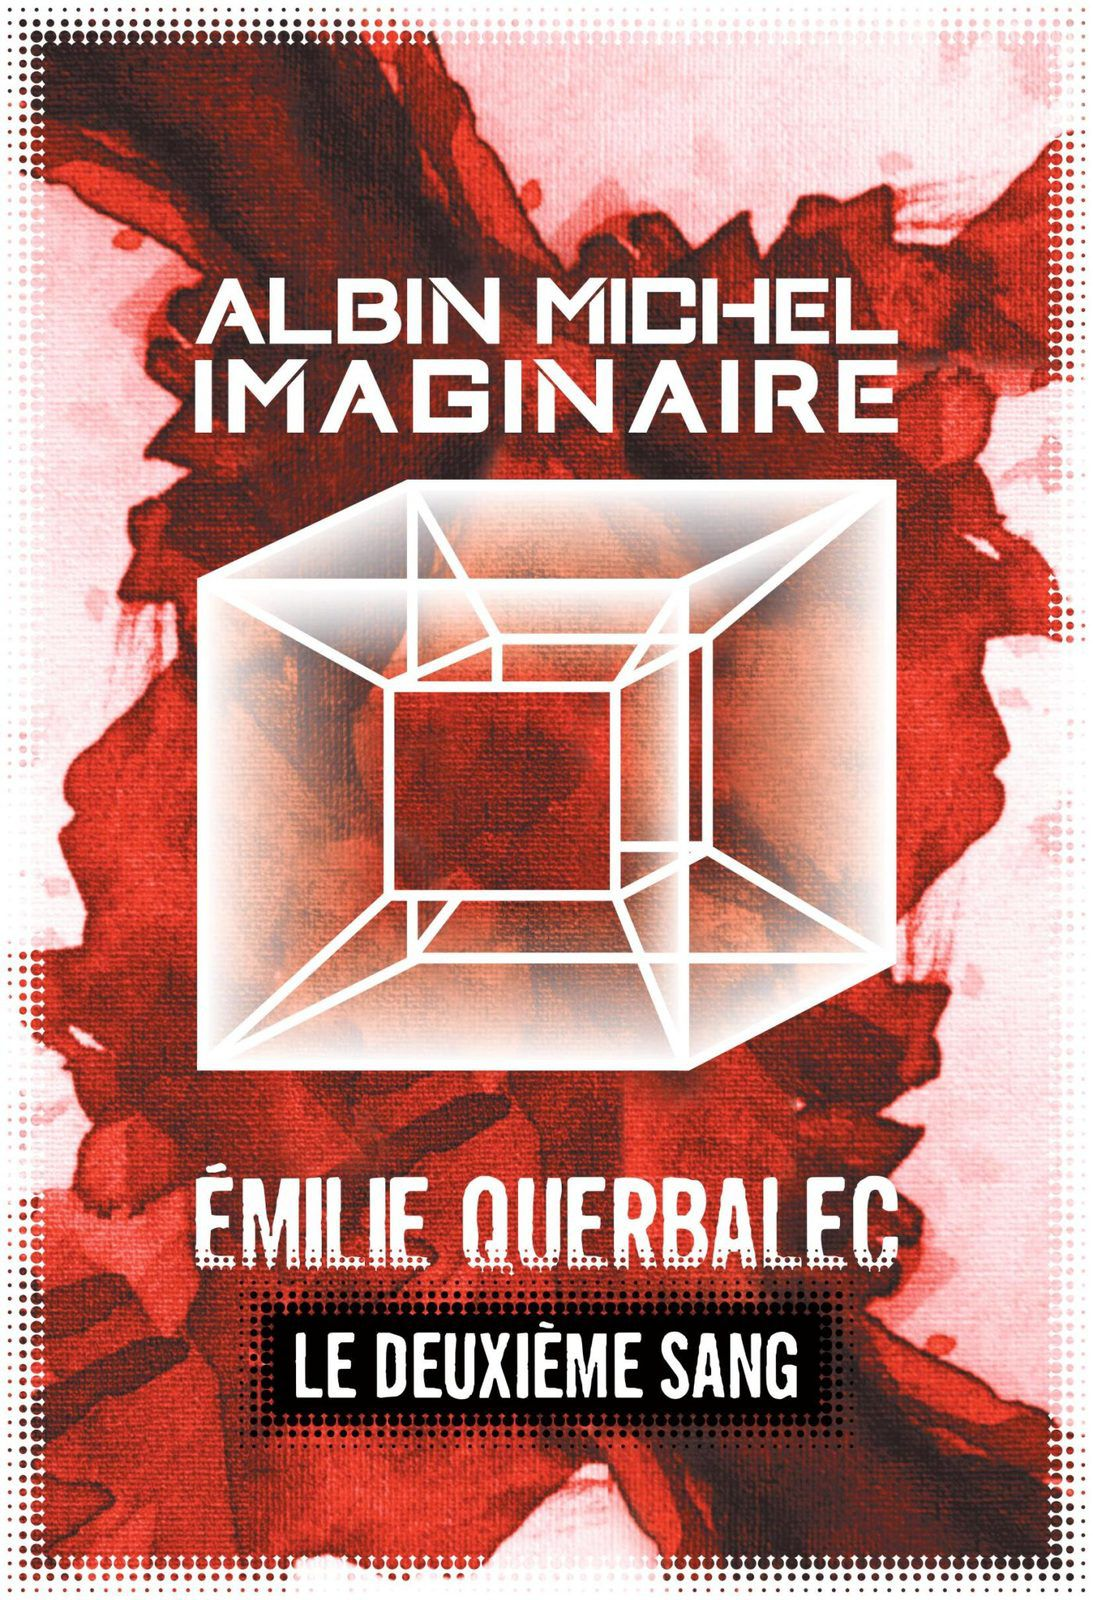 Le deuxième sang - Emilie QUERBALEC (2020), Albin Michel collection Imaginaire, 2020, 46 pages